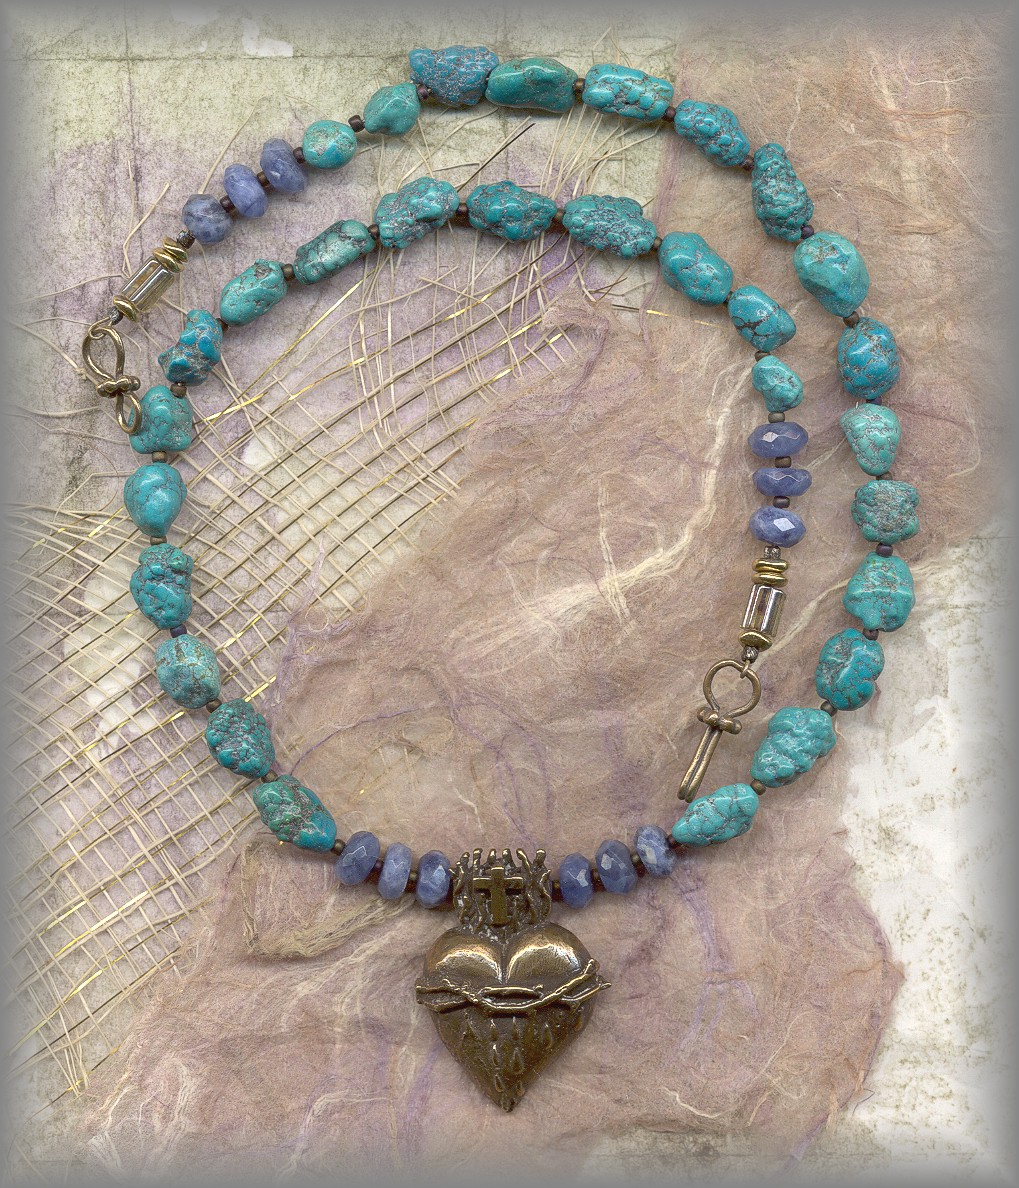 RELIGIOUS JEWELRY: JSH.18.2410 (turquoise / faceted sodalite)